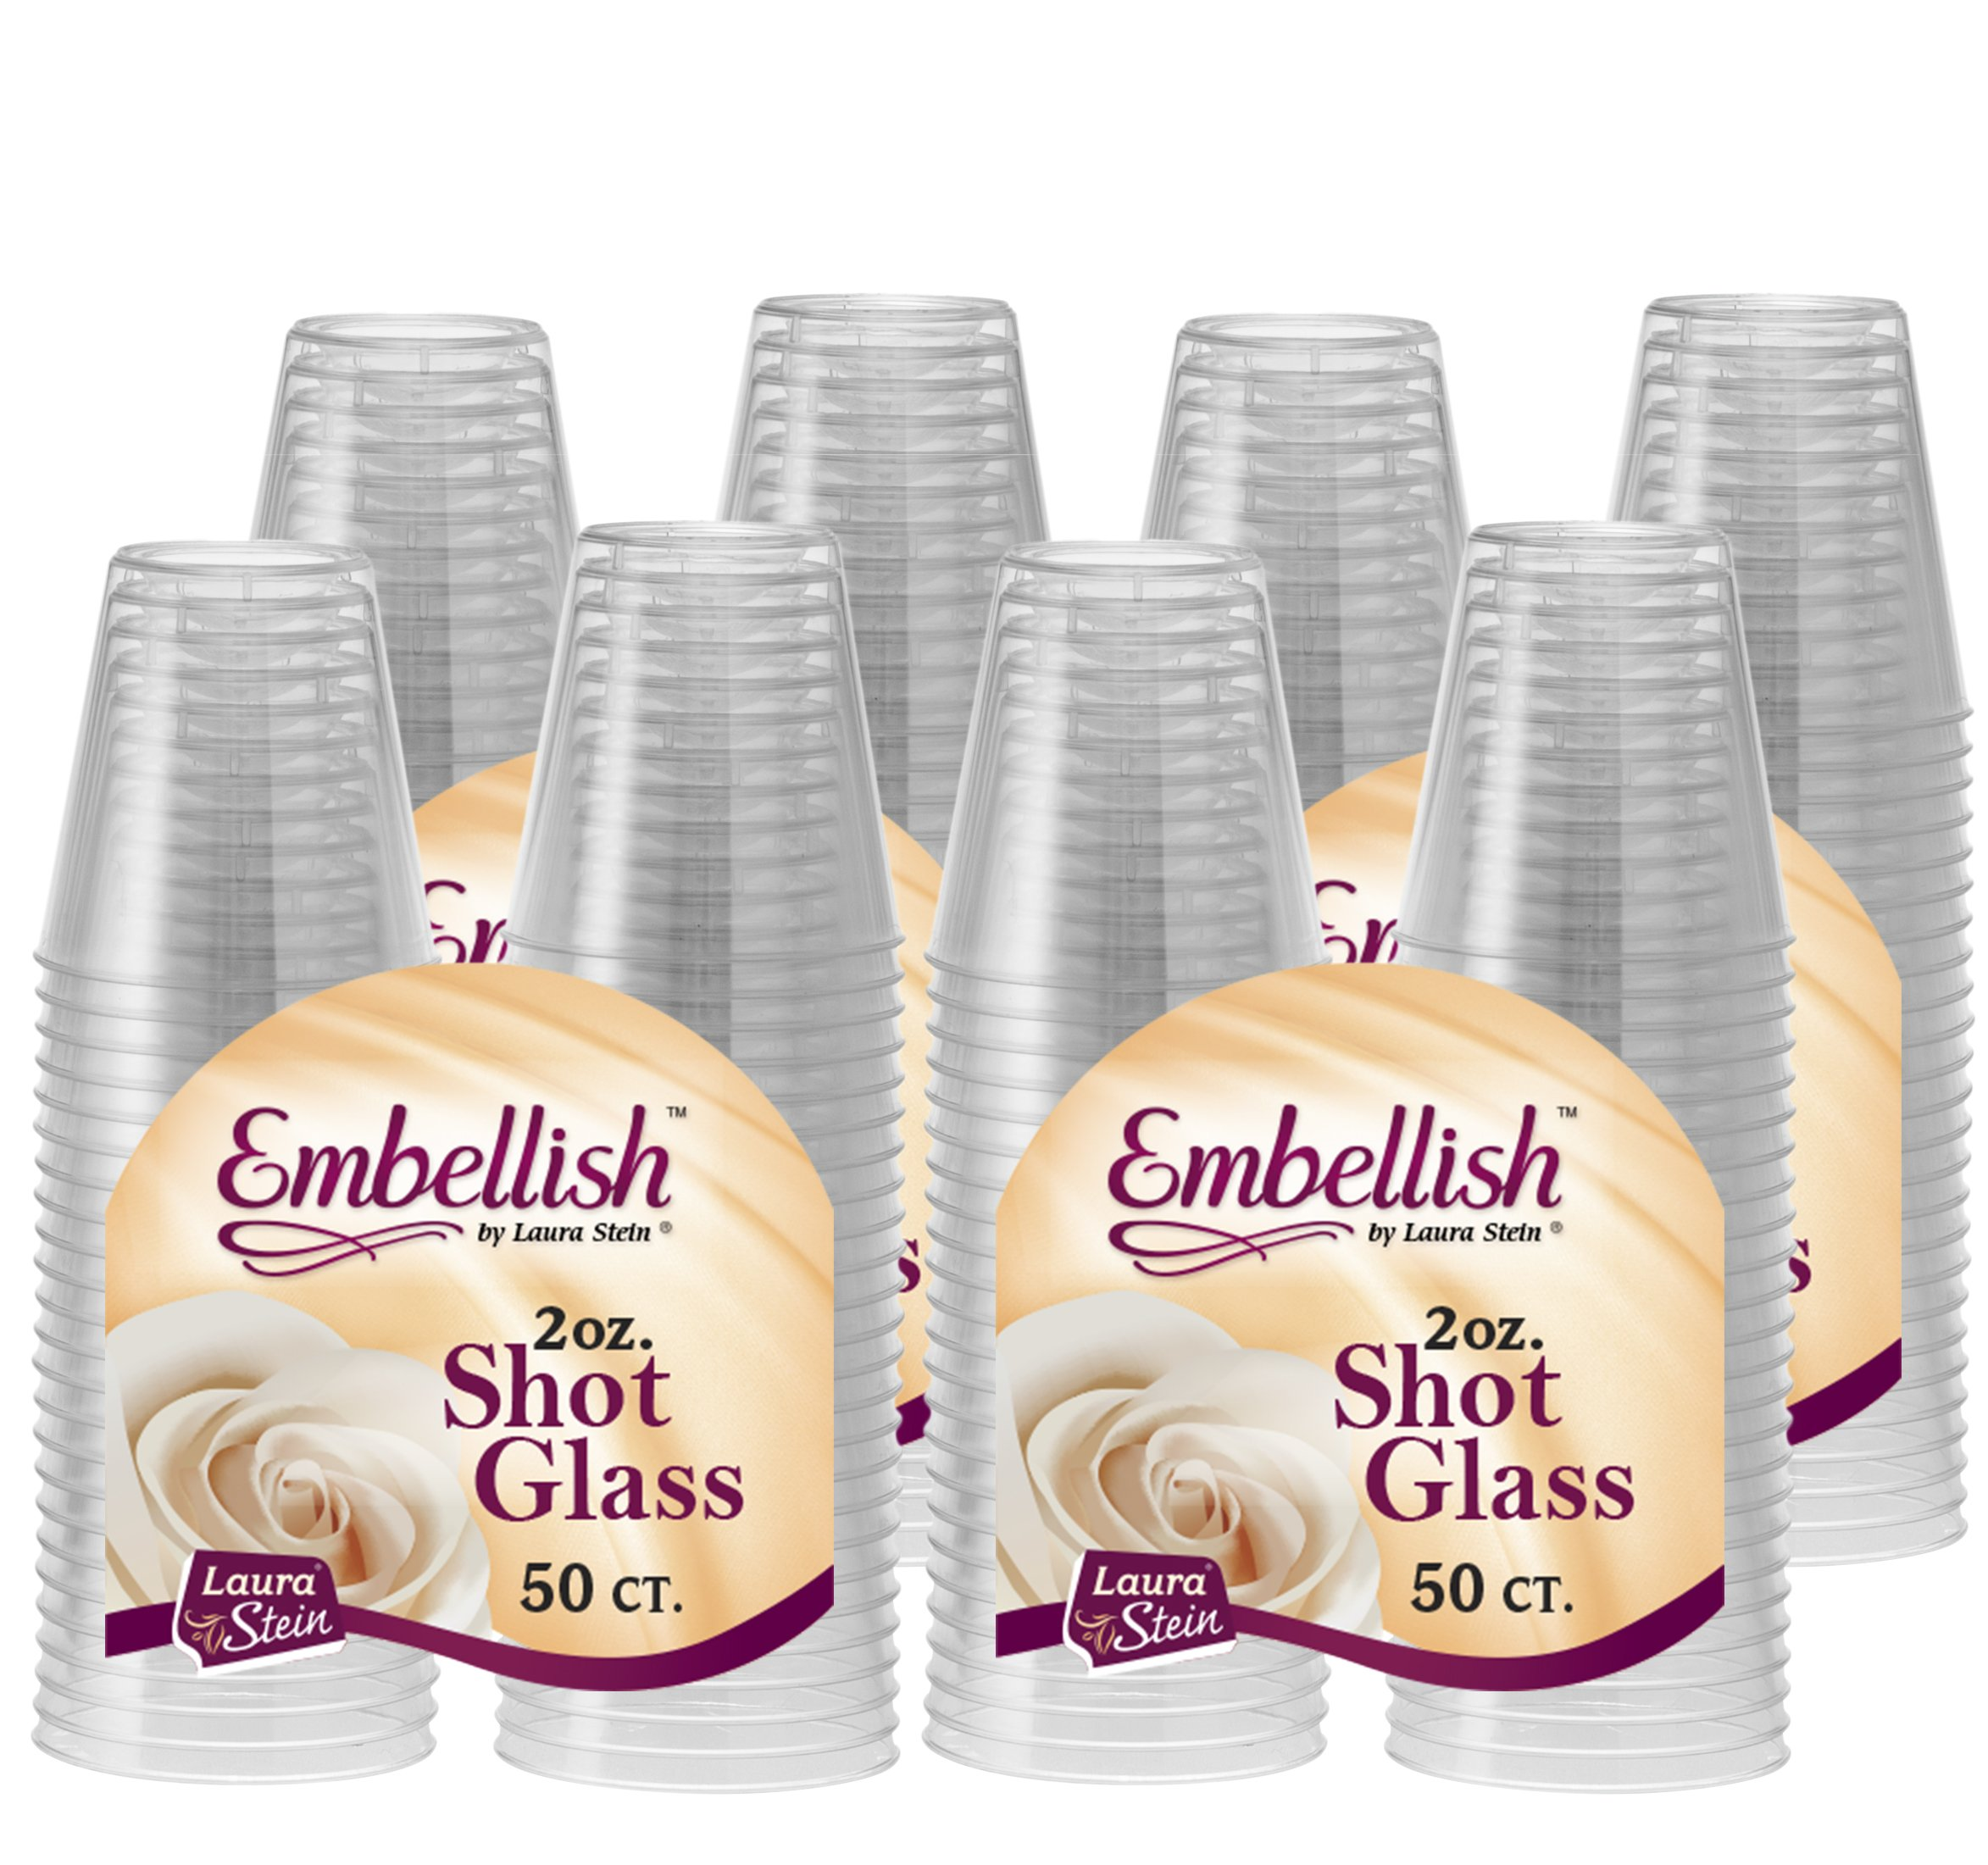 [200 Count] Embellish, 2 oz Crystal Clear Disposable Hard Plastic Shot Glass, Great for Whiskey, Jello, Shots, Tasting, Sauce, Dips, Samples, Perfect For Home, Bar, Parties, or Receptions by Embellish